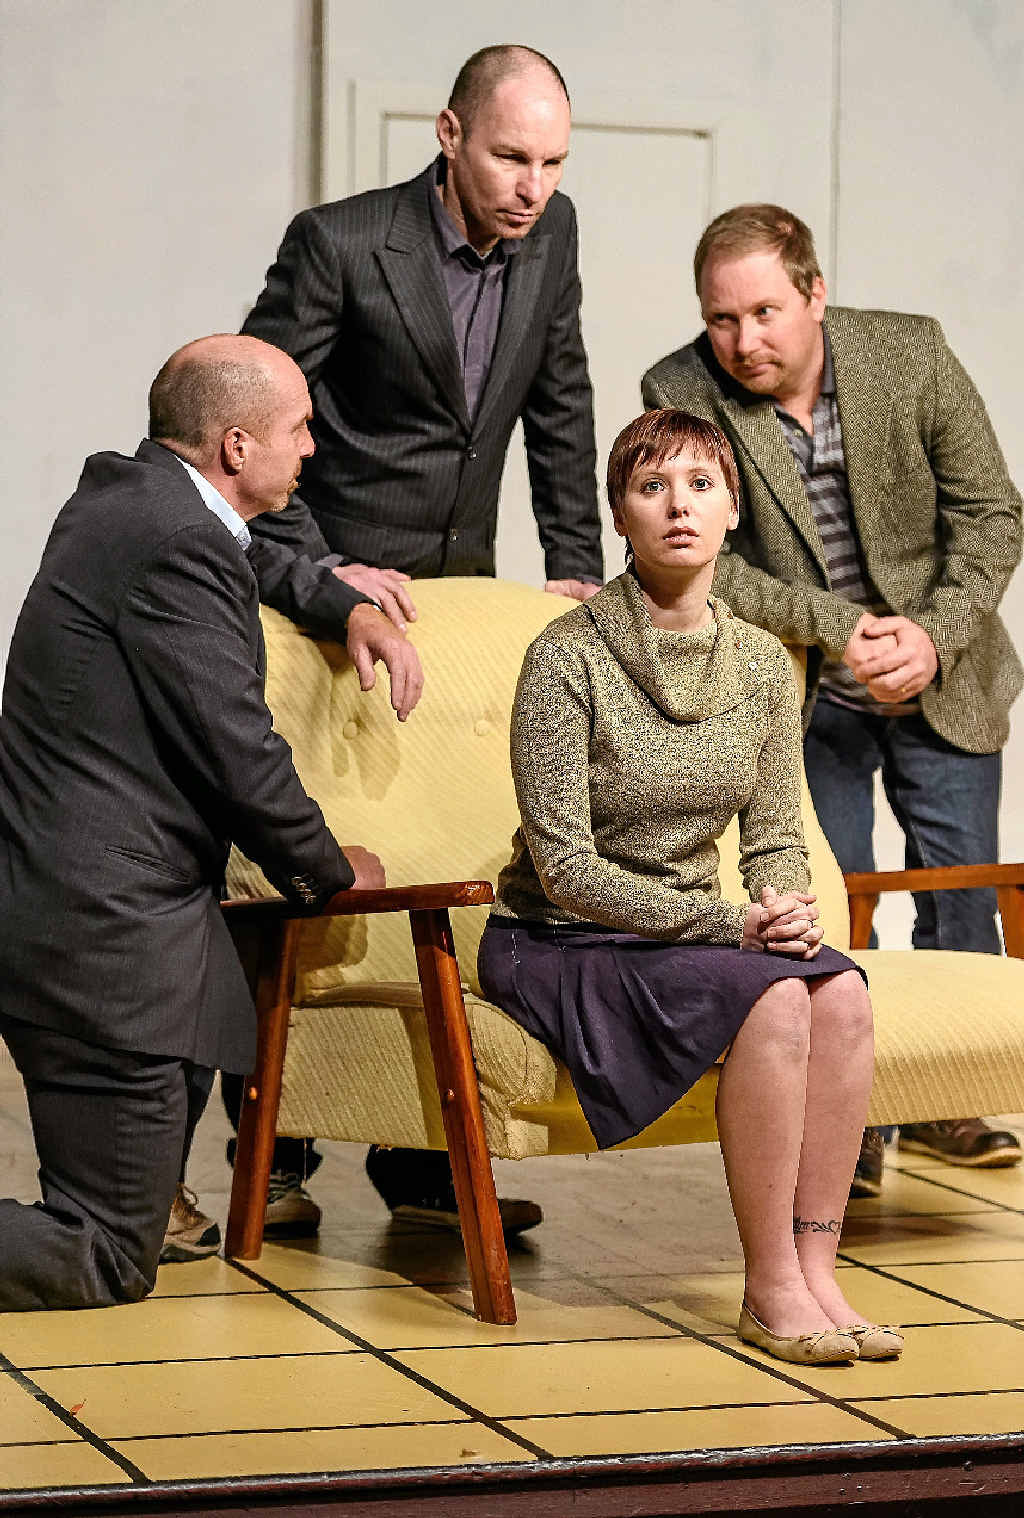 Nick Fuad, John Taylor, Jason Smith and Elyse Knowles in a scene from Wait Until Dark.